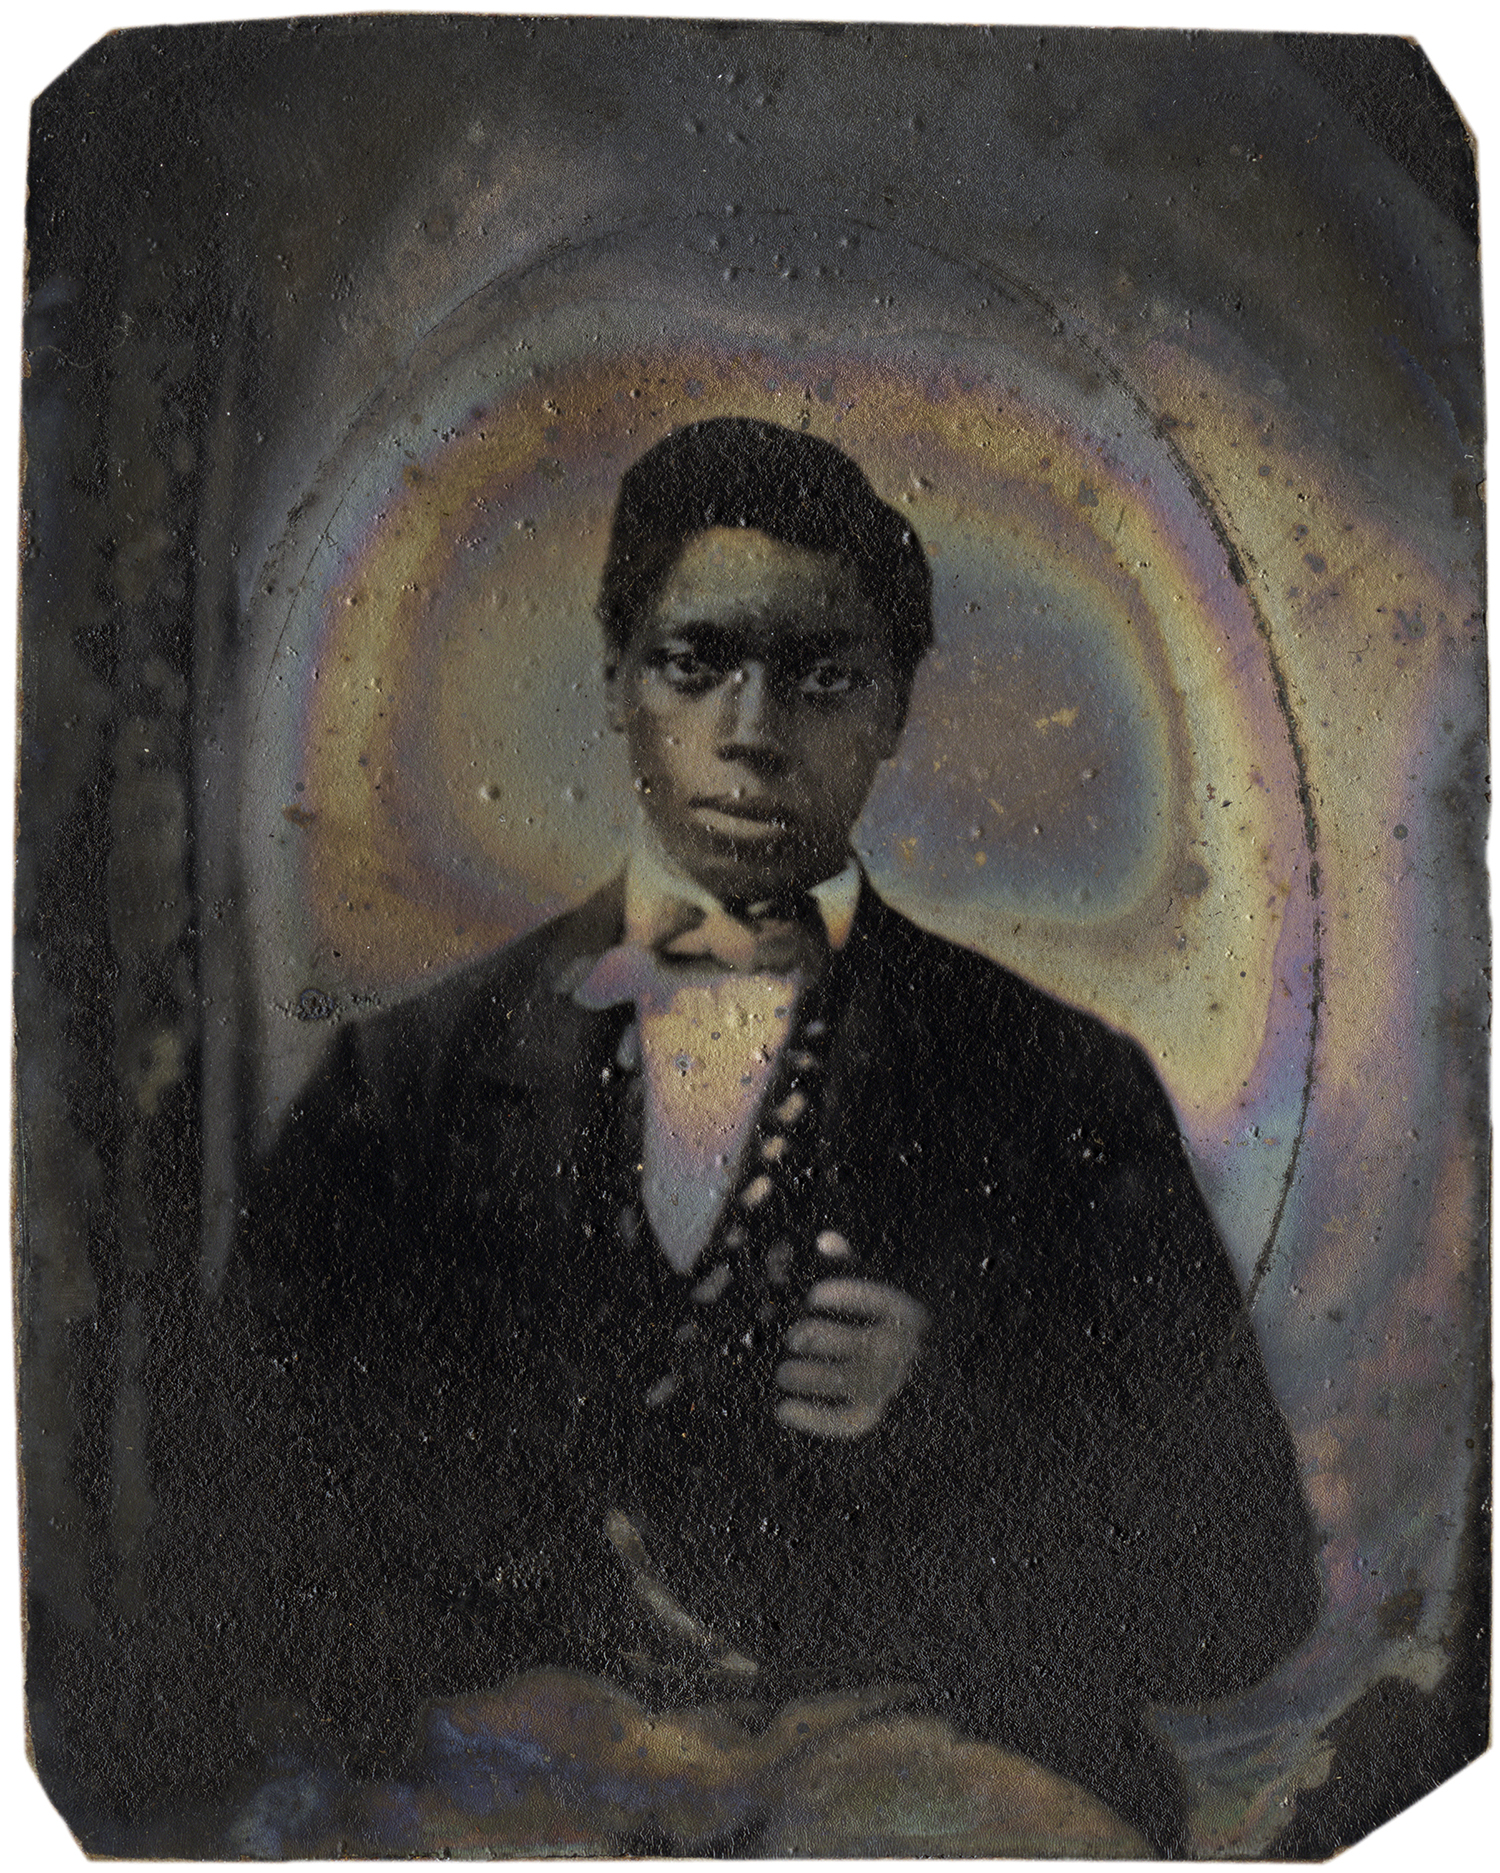 Young Man Wearing Bow Tie, 2011 - LR11960